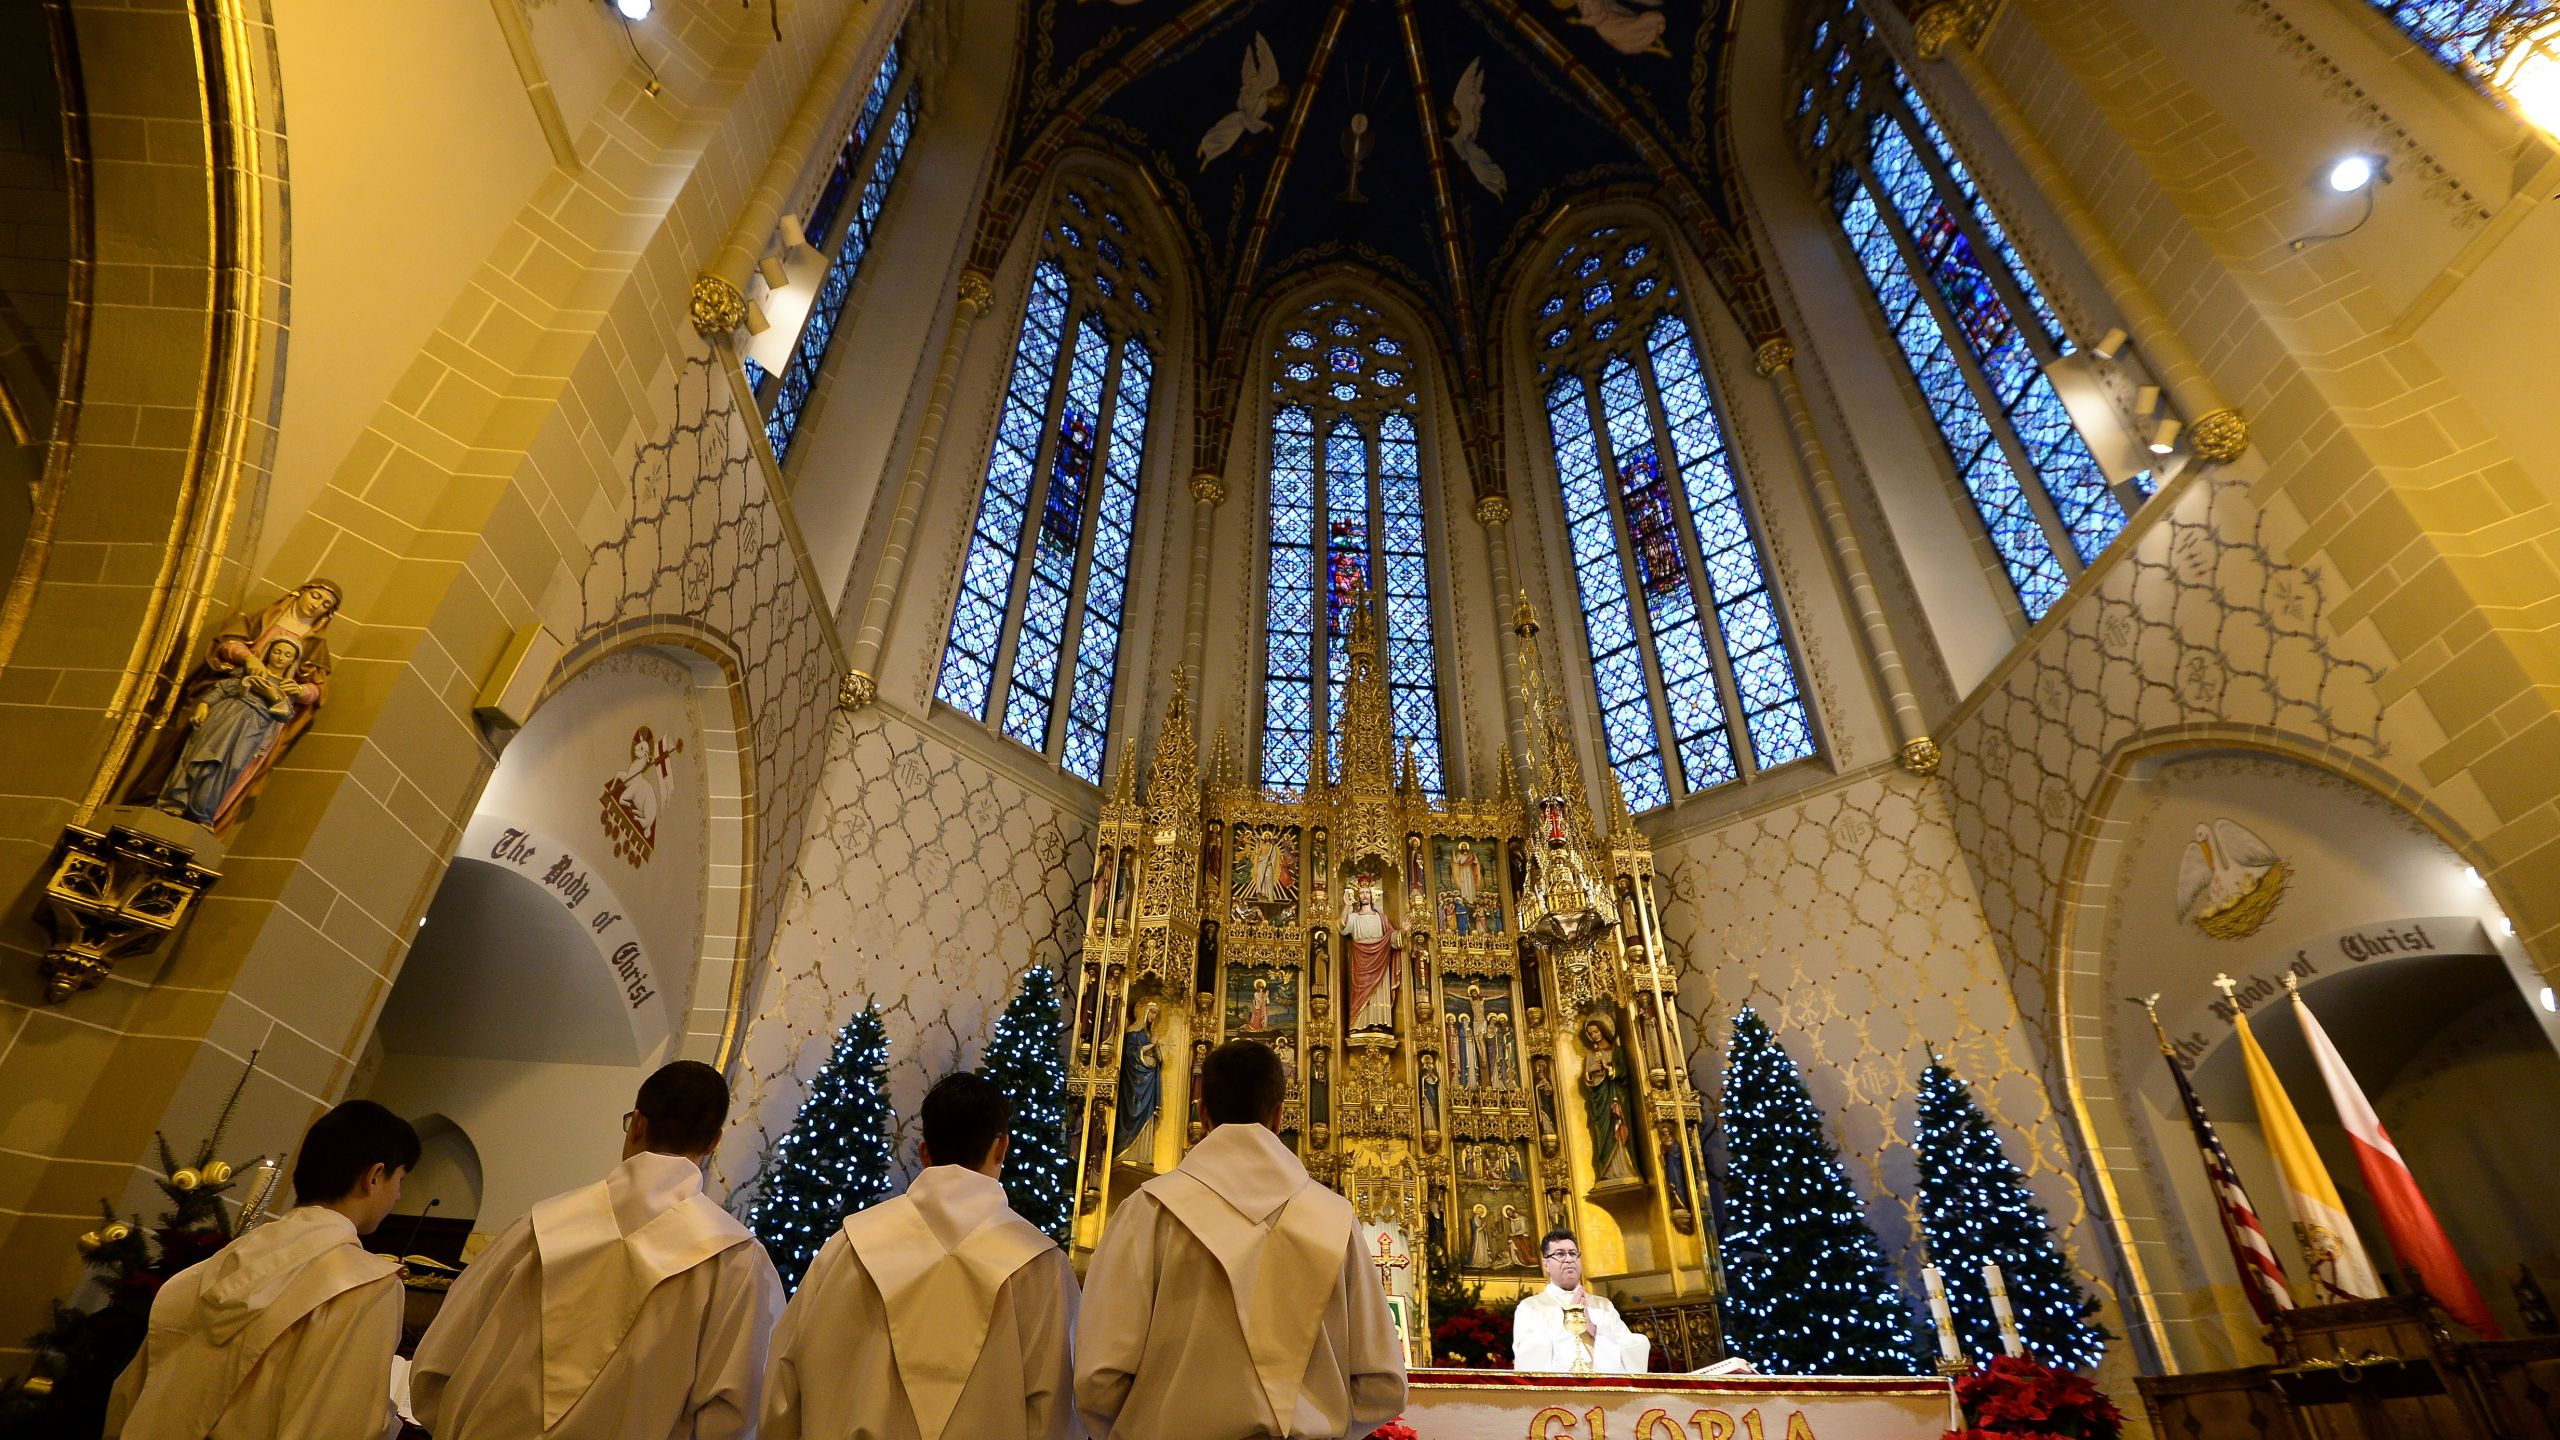 A priest says Sunday Mass at a Polish catholic church in Hamtramck, Mich., on Jan. 10, 2016. (Credit JEWEL SAMAD/AFP/Getty Images)